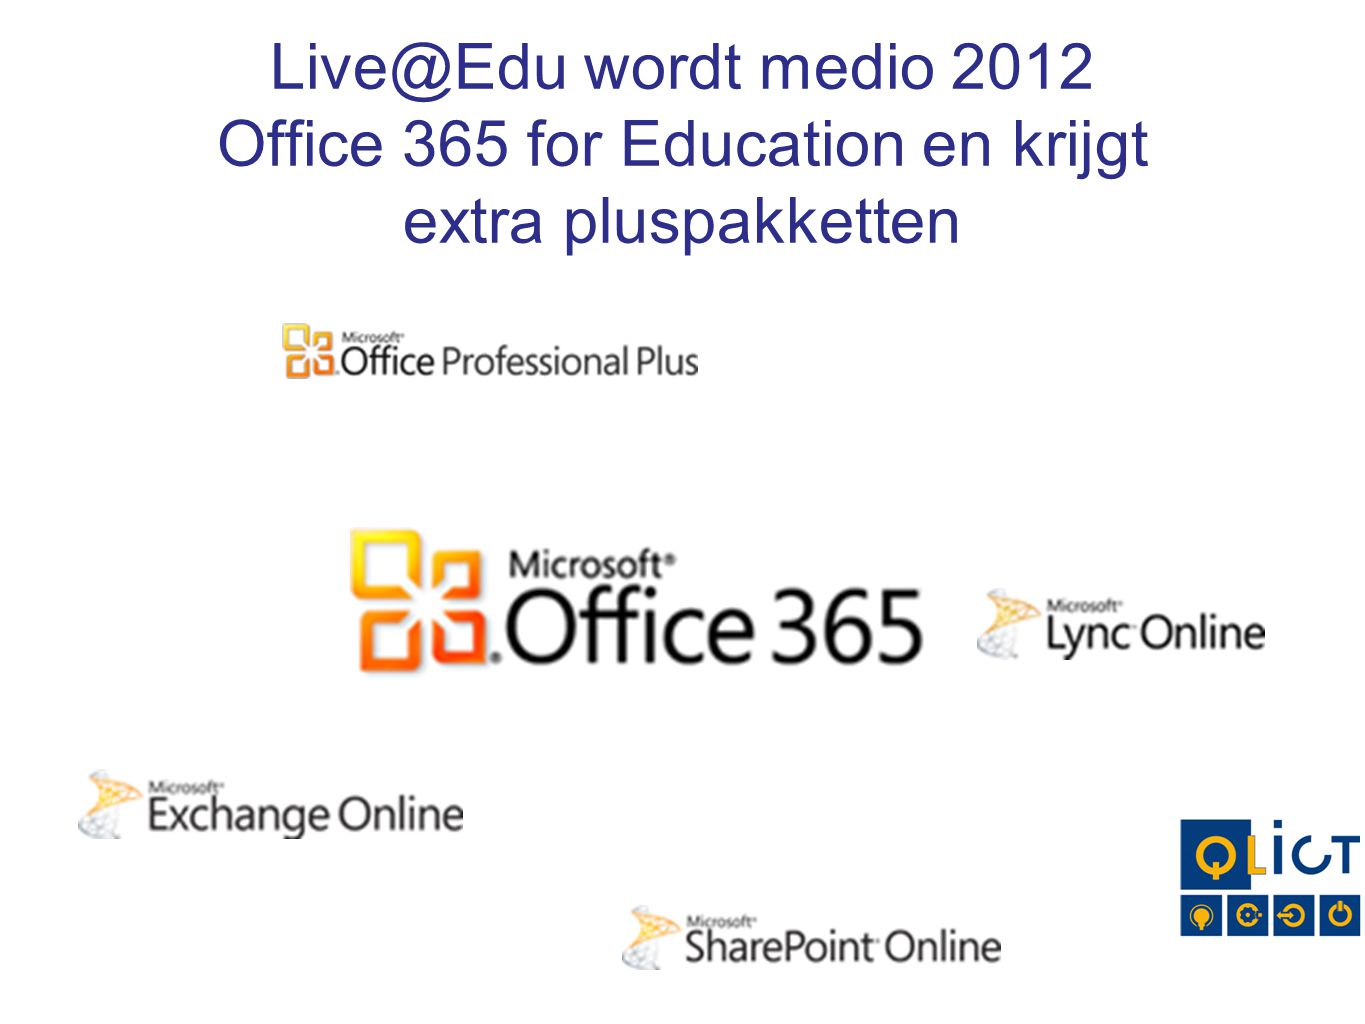 Live@Edu wordt medio 2012 Office 365 for Education en krijgt extra pluspakketten